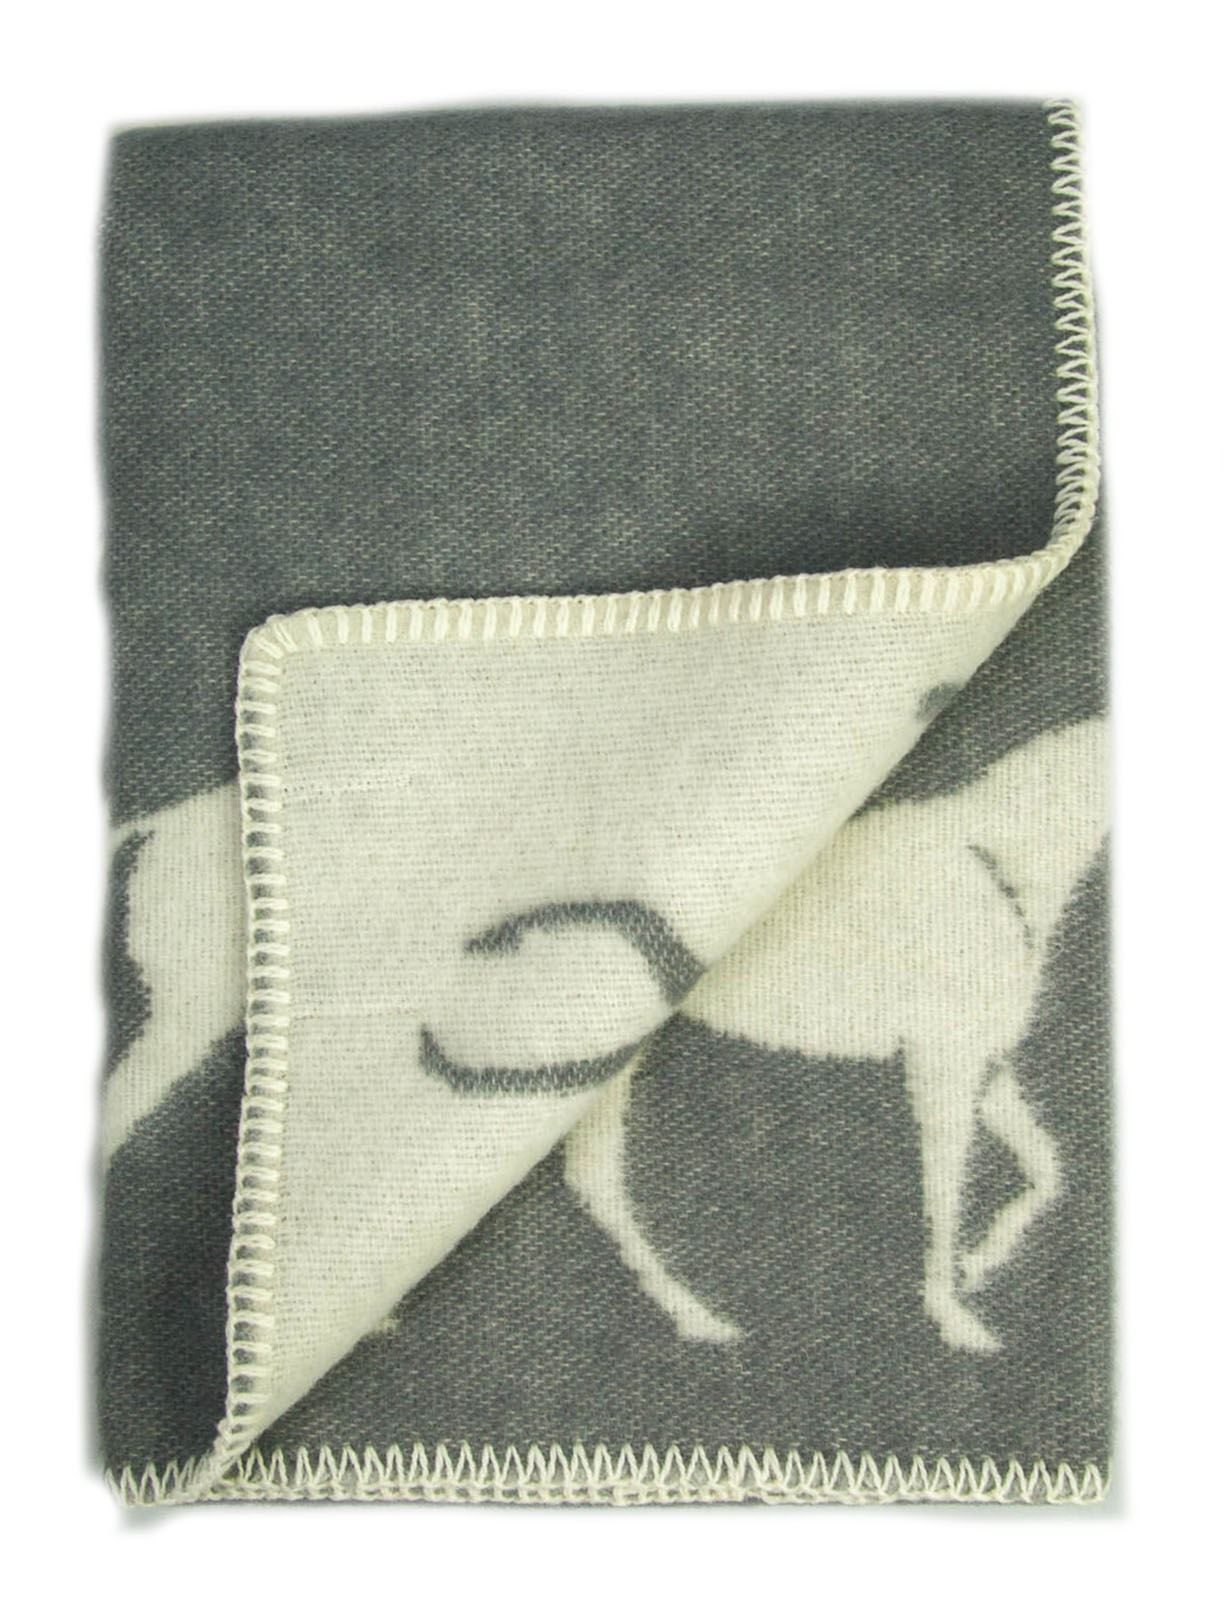 Haute Qualité Genou Tapis Laine Children/'s Small Blanket Throw mouton lapin cheval